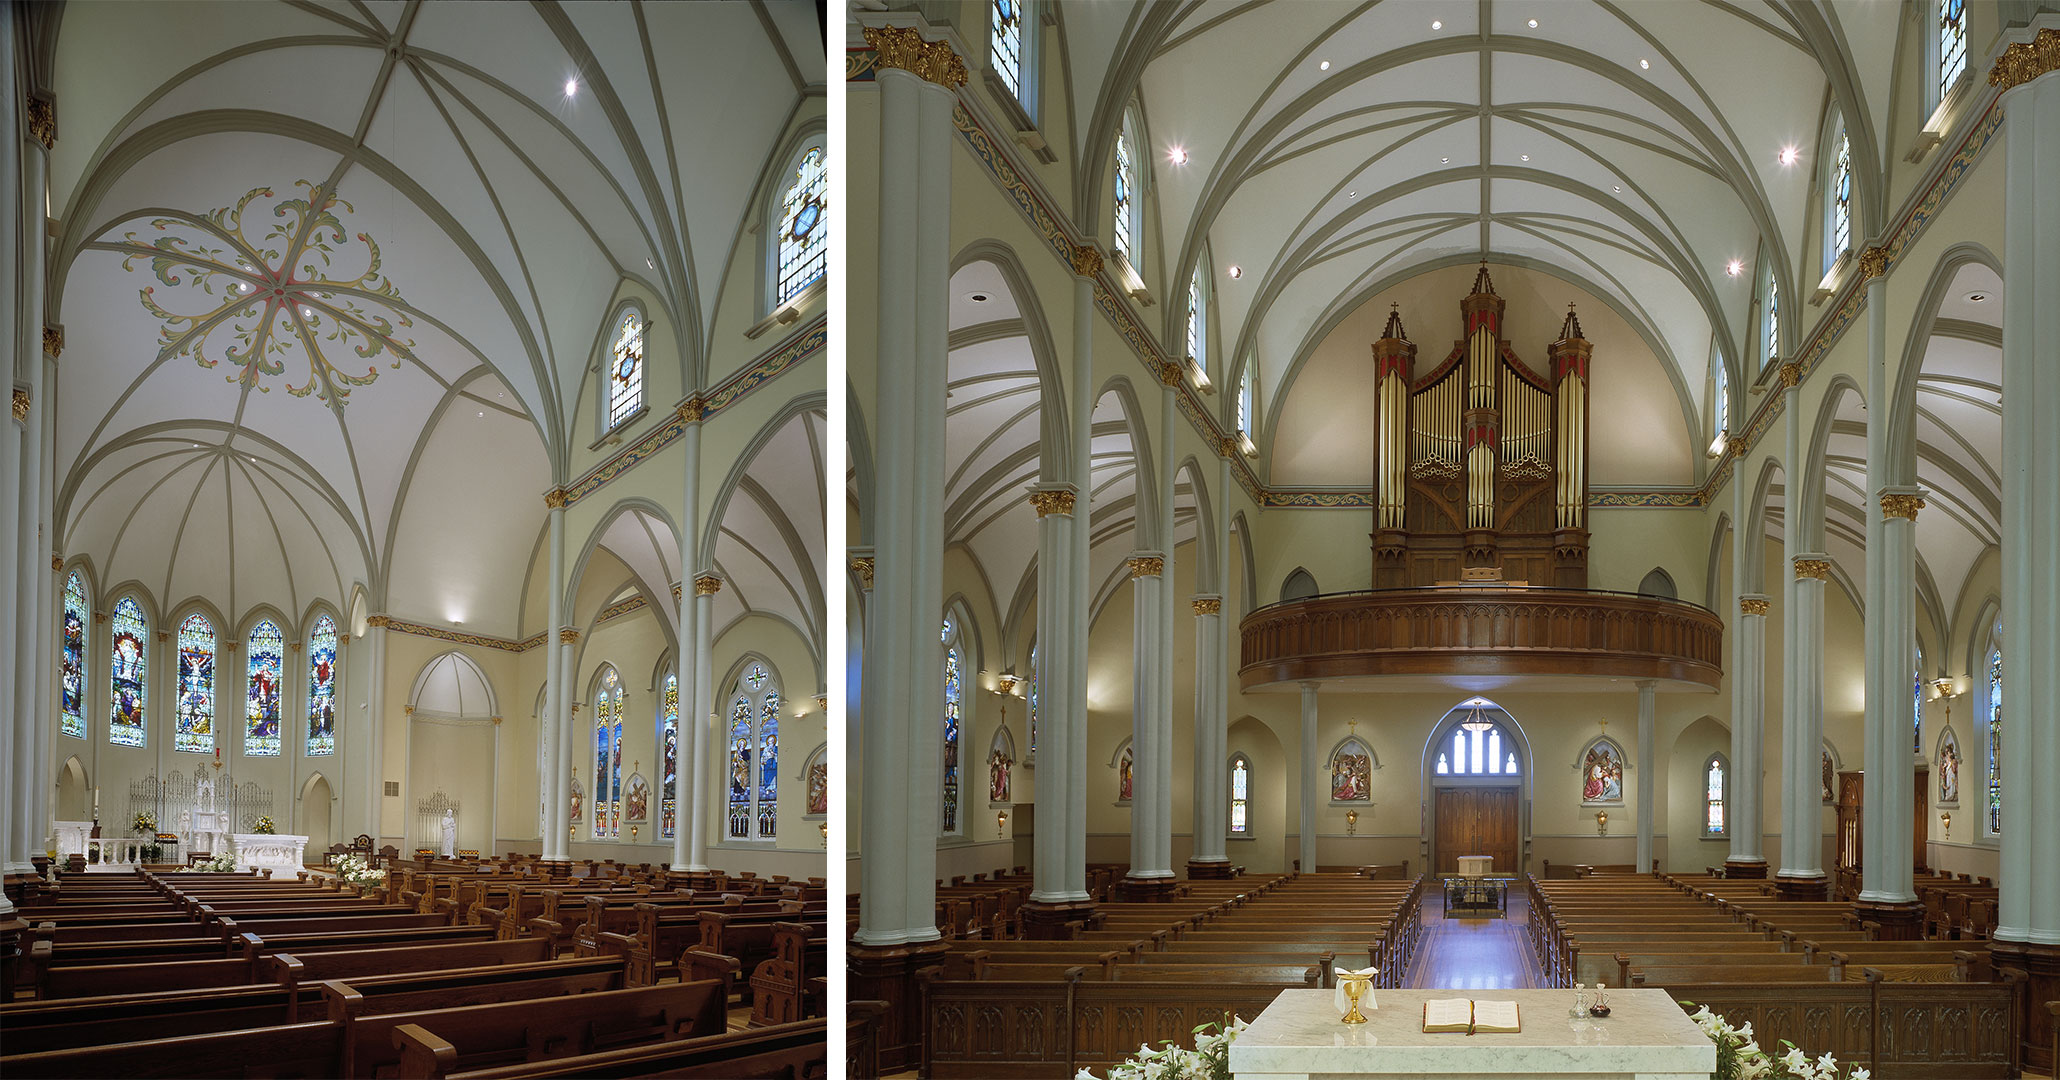 Historic Preservationists at Boudreaux worked with St Peter's Catholic Church to update and modernize the Basilica.